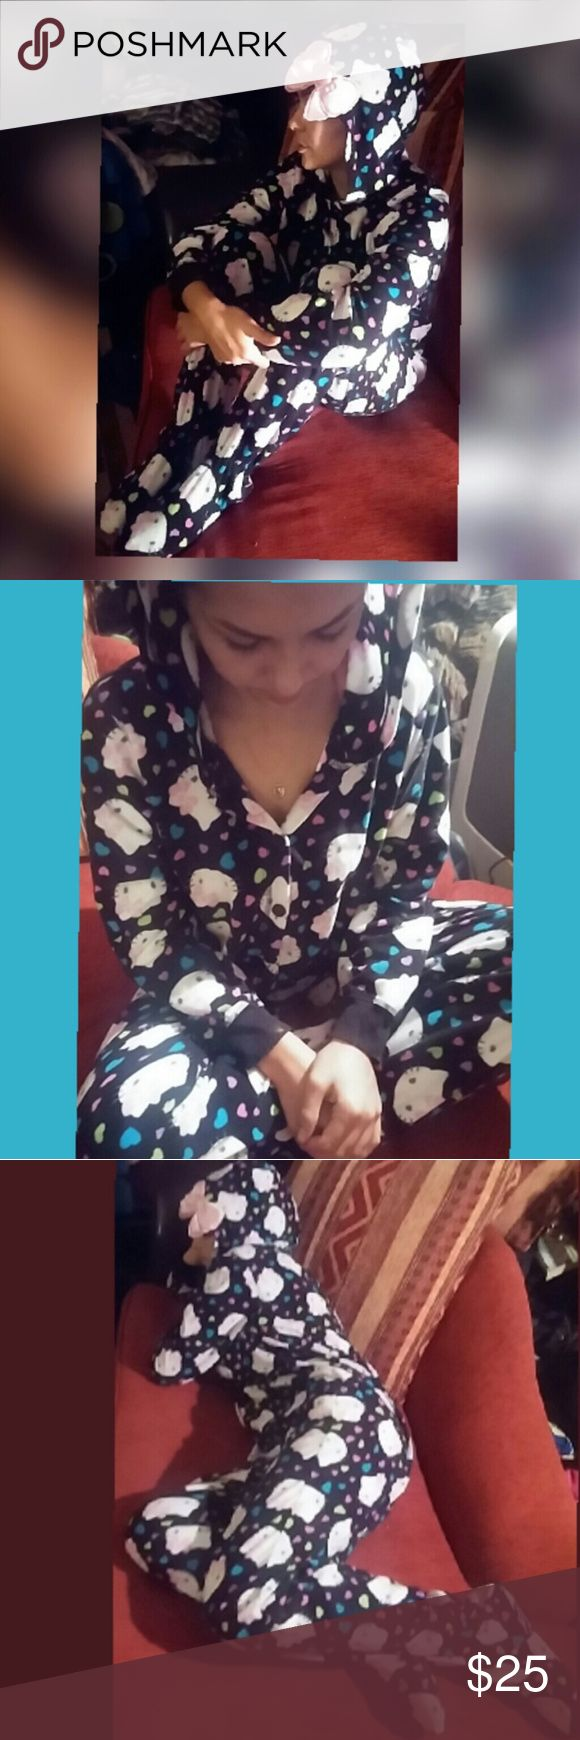 Hello kitty onesy Ladies hello kitty hooded onesy.. has a cute bow on the hoody..button down front..with footys..so soft & keeps u nice & warm on the colder nites 2 come..literally from ur head 2 ur toes! Excellent condition! Intimates & Sleepwear